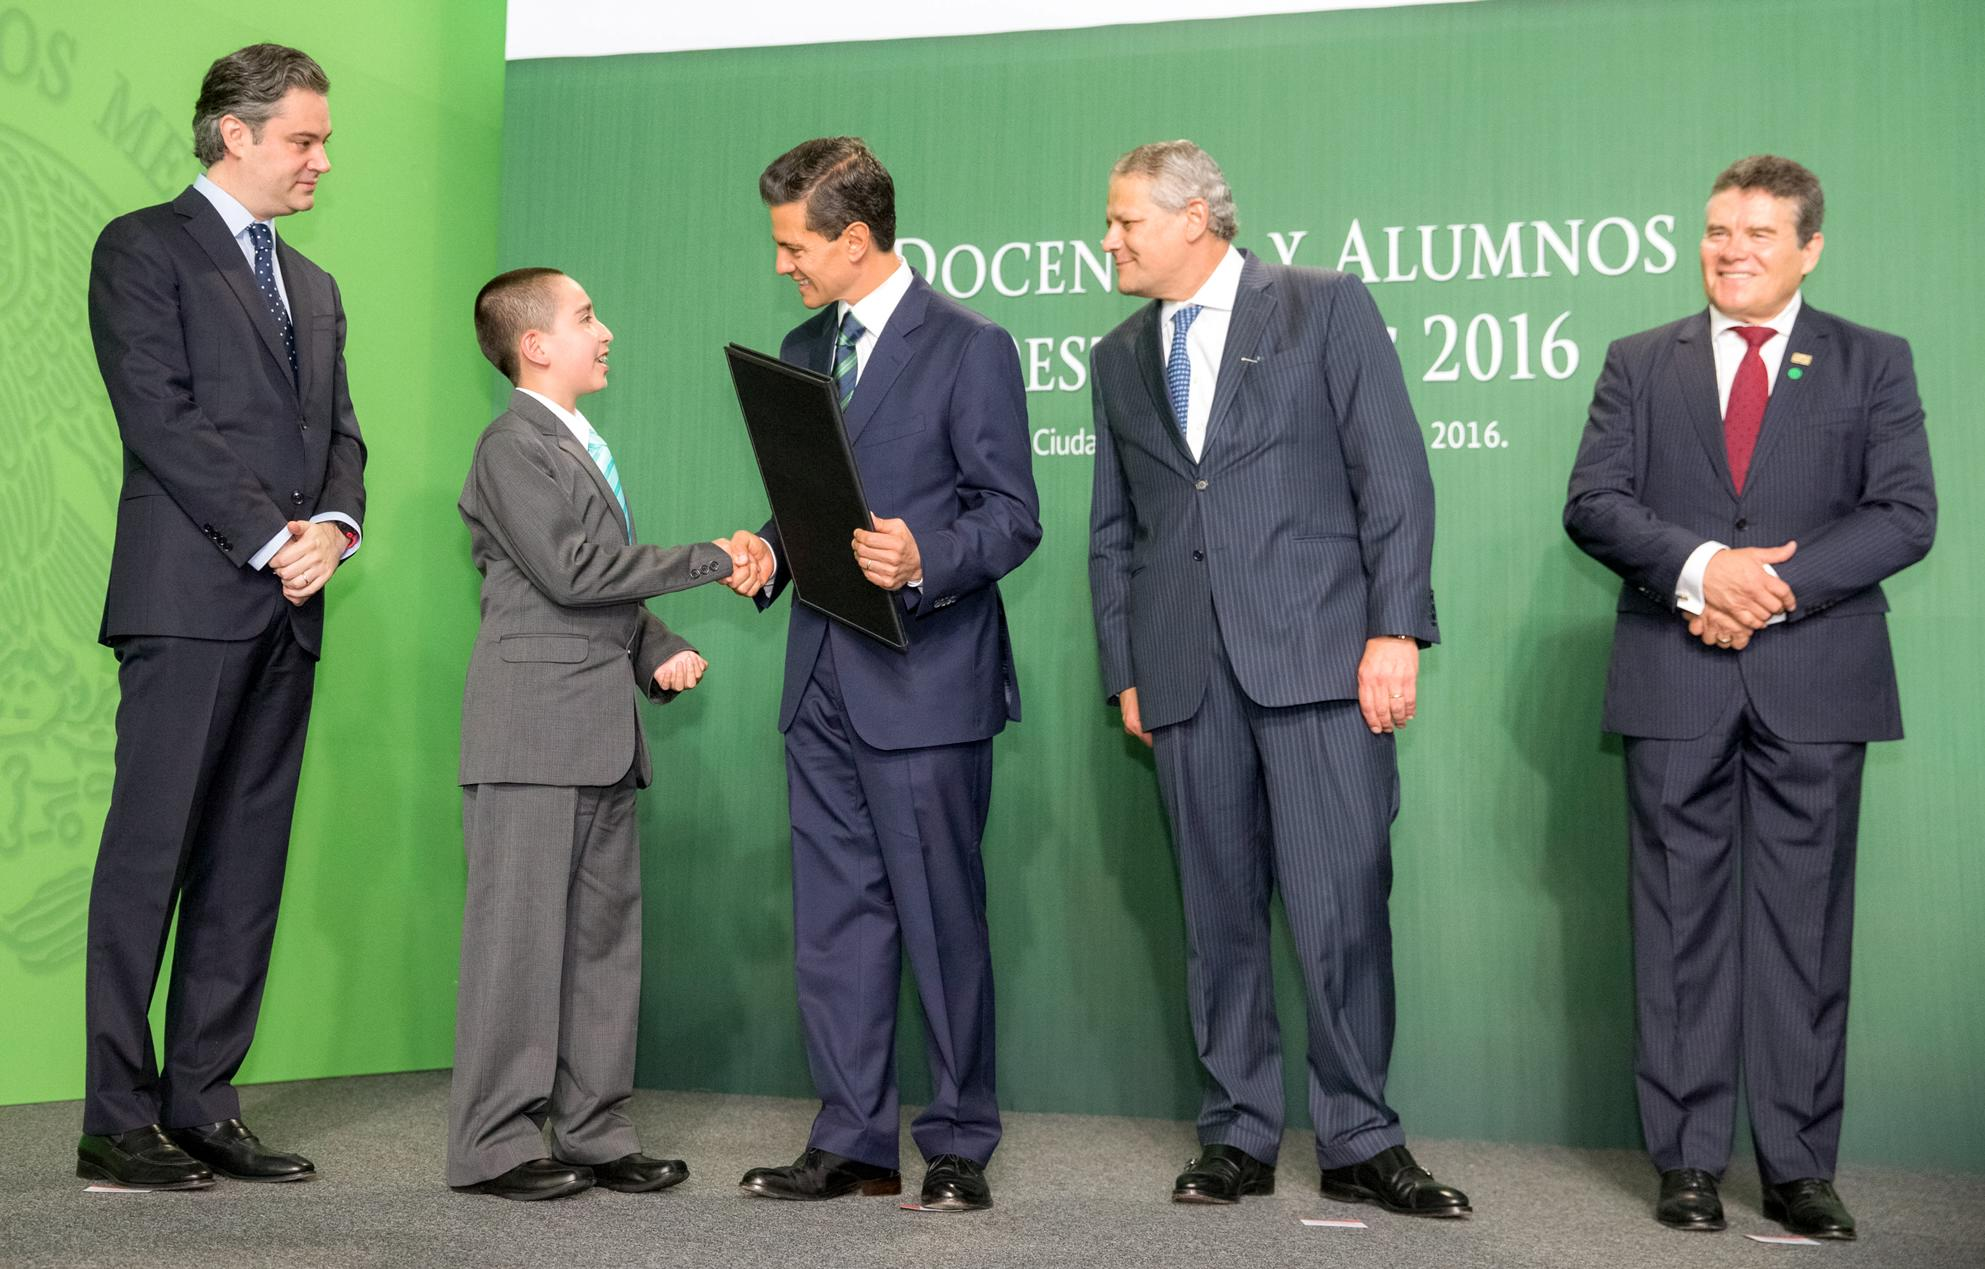 Addressing the one thousand most outstanding sixth grade students from across the country, President Enrique Peña Nieto said today that they reflect the education and training they have received from the teachers in our country.